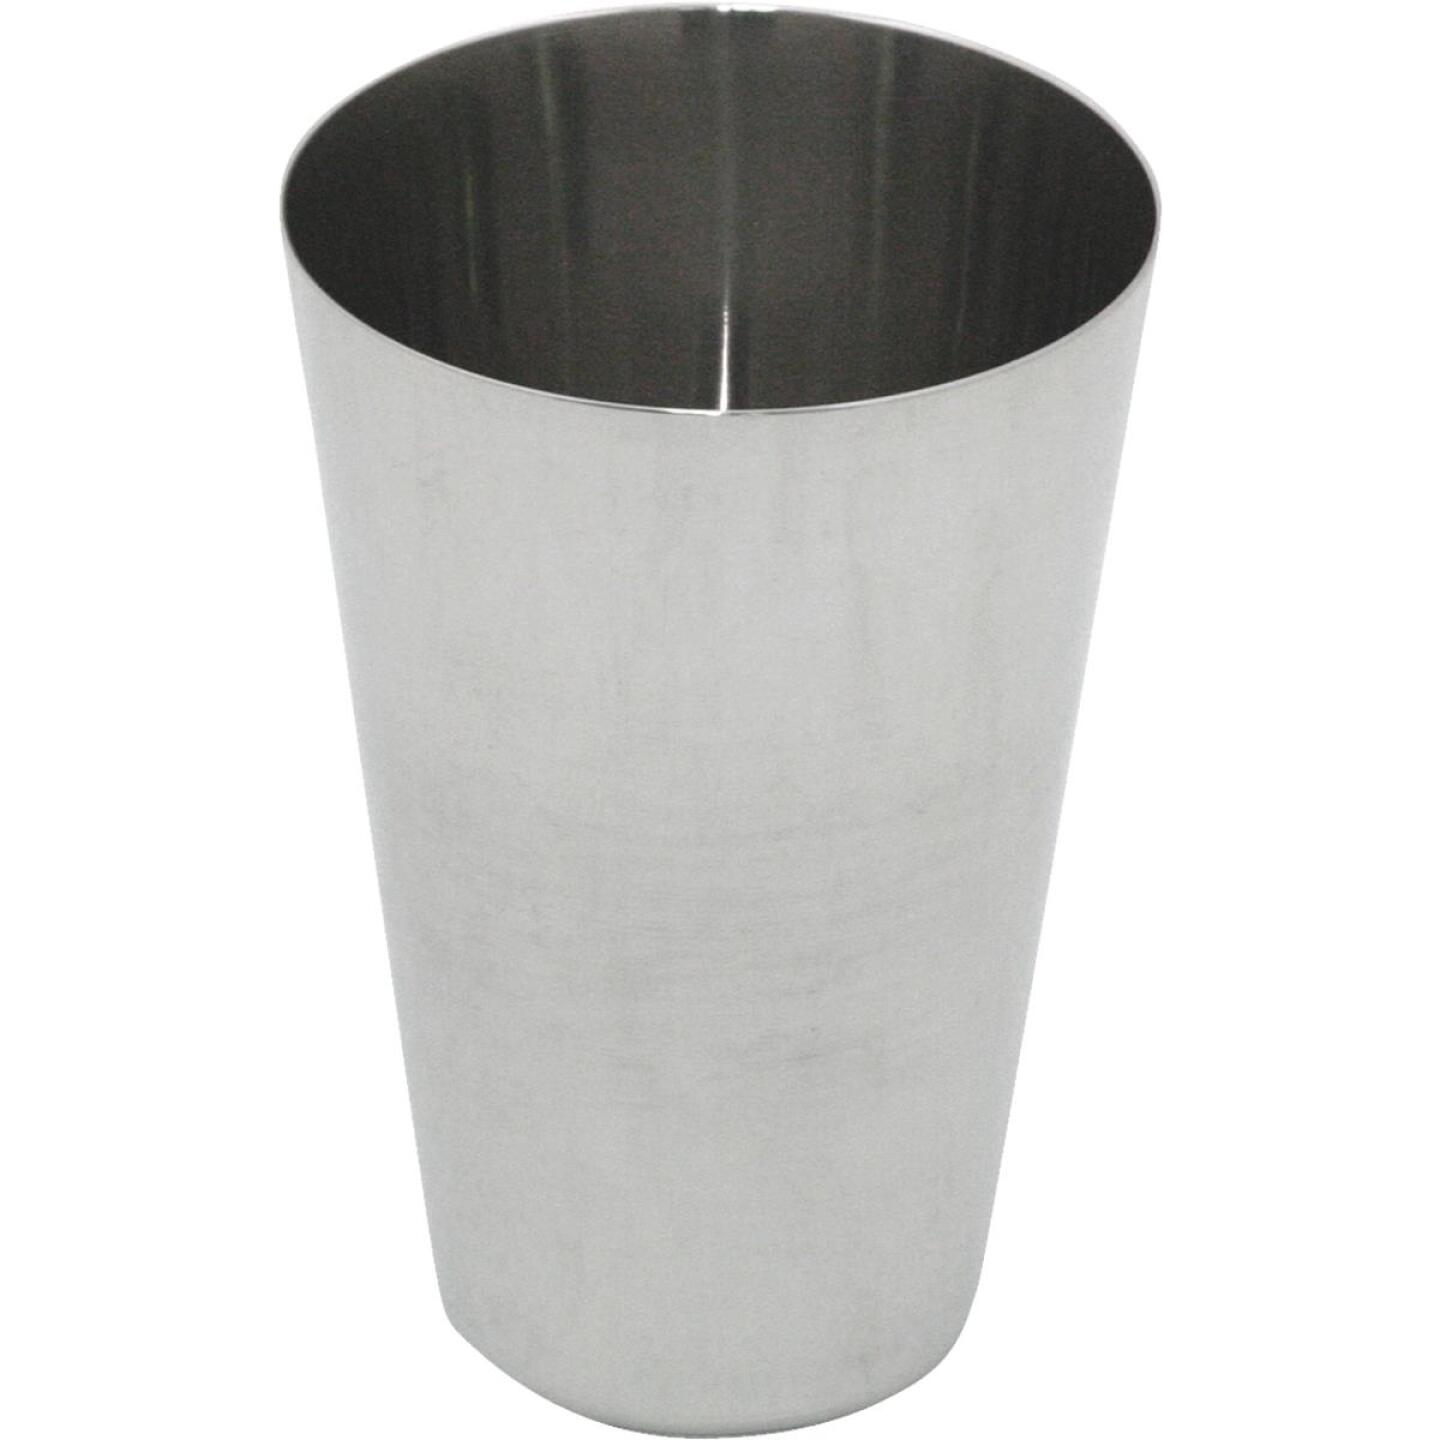 Lindy's 14 Oz. Stainless Steel Tumbler Image 1